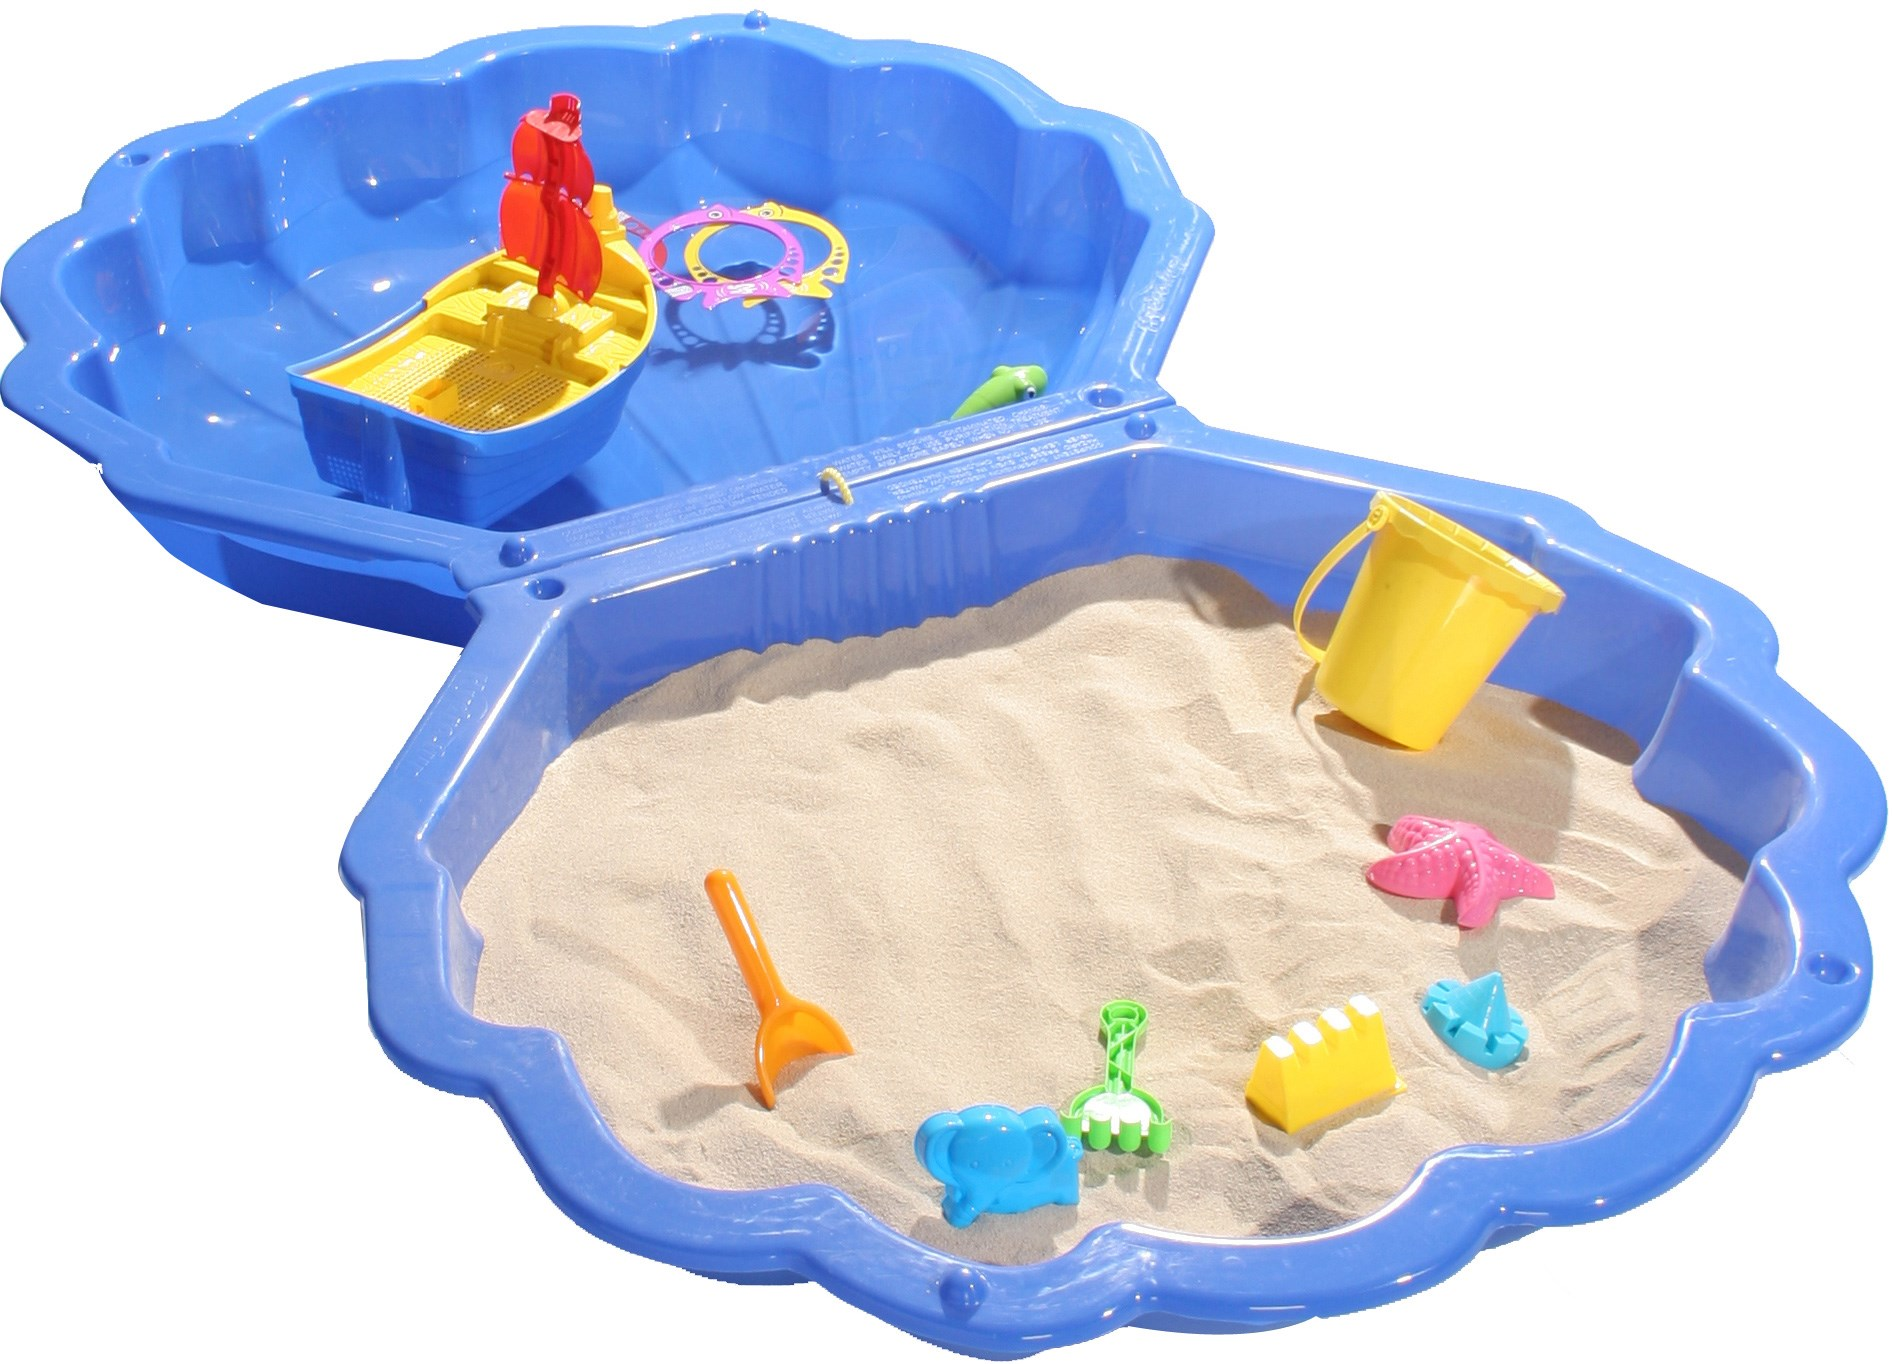 Euroactive Clam Shaped Pool Amp Sandpit Swimming Pools